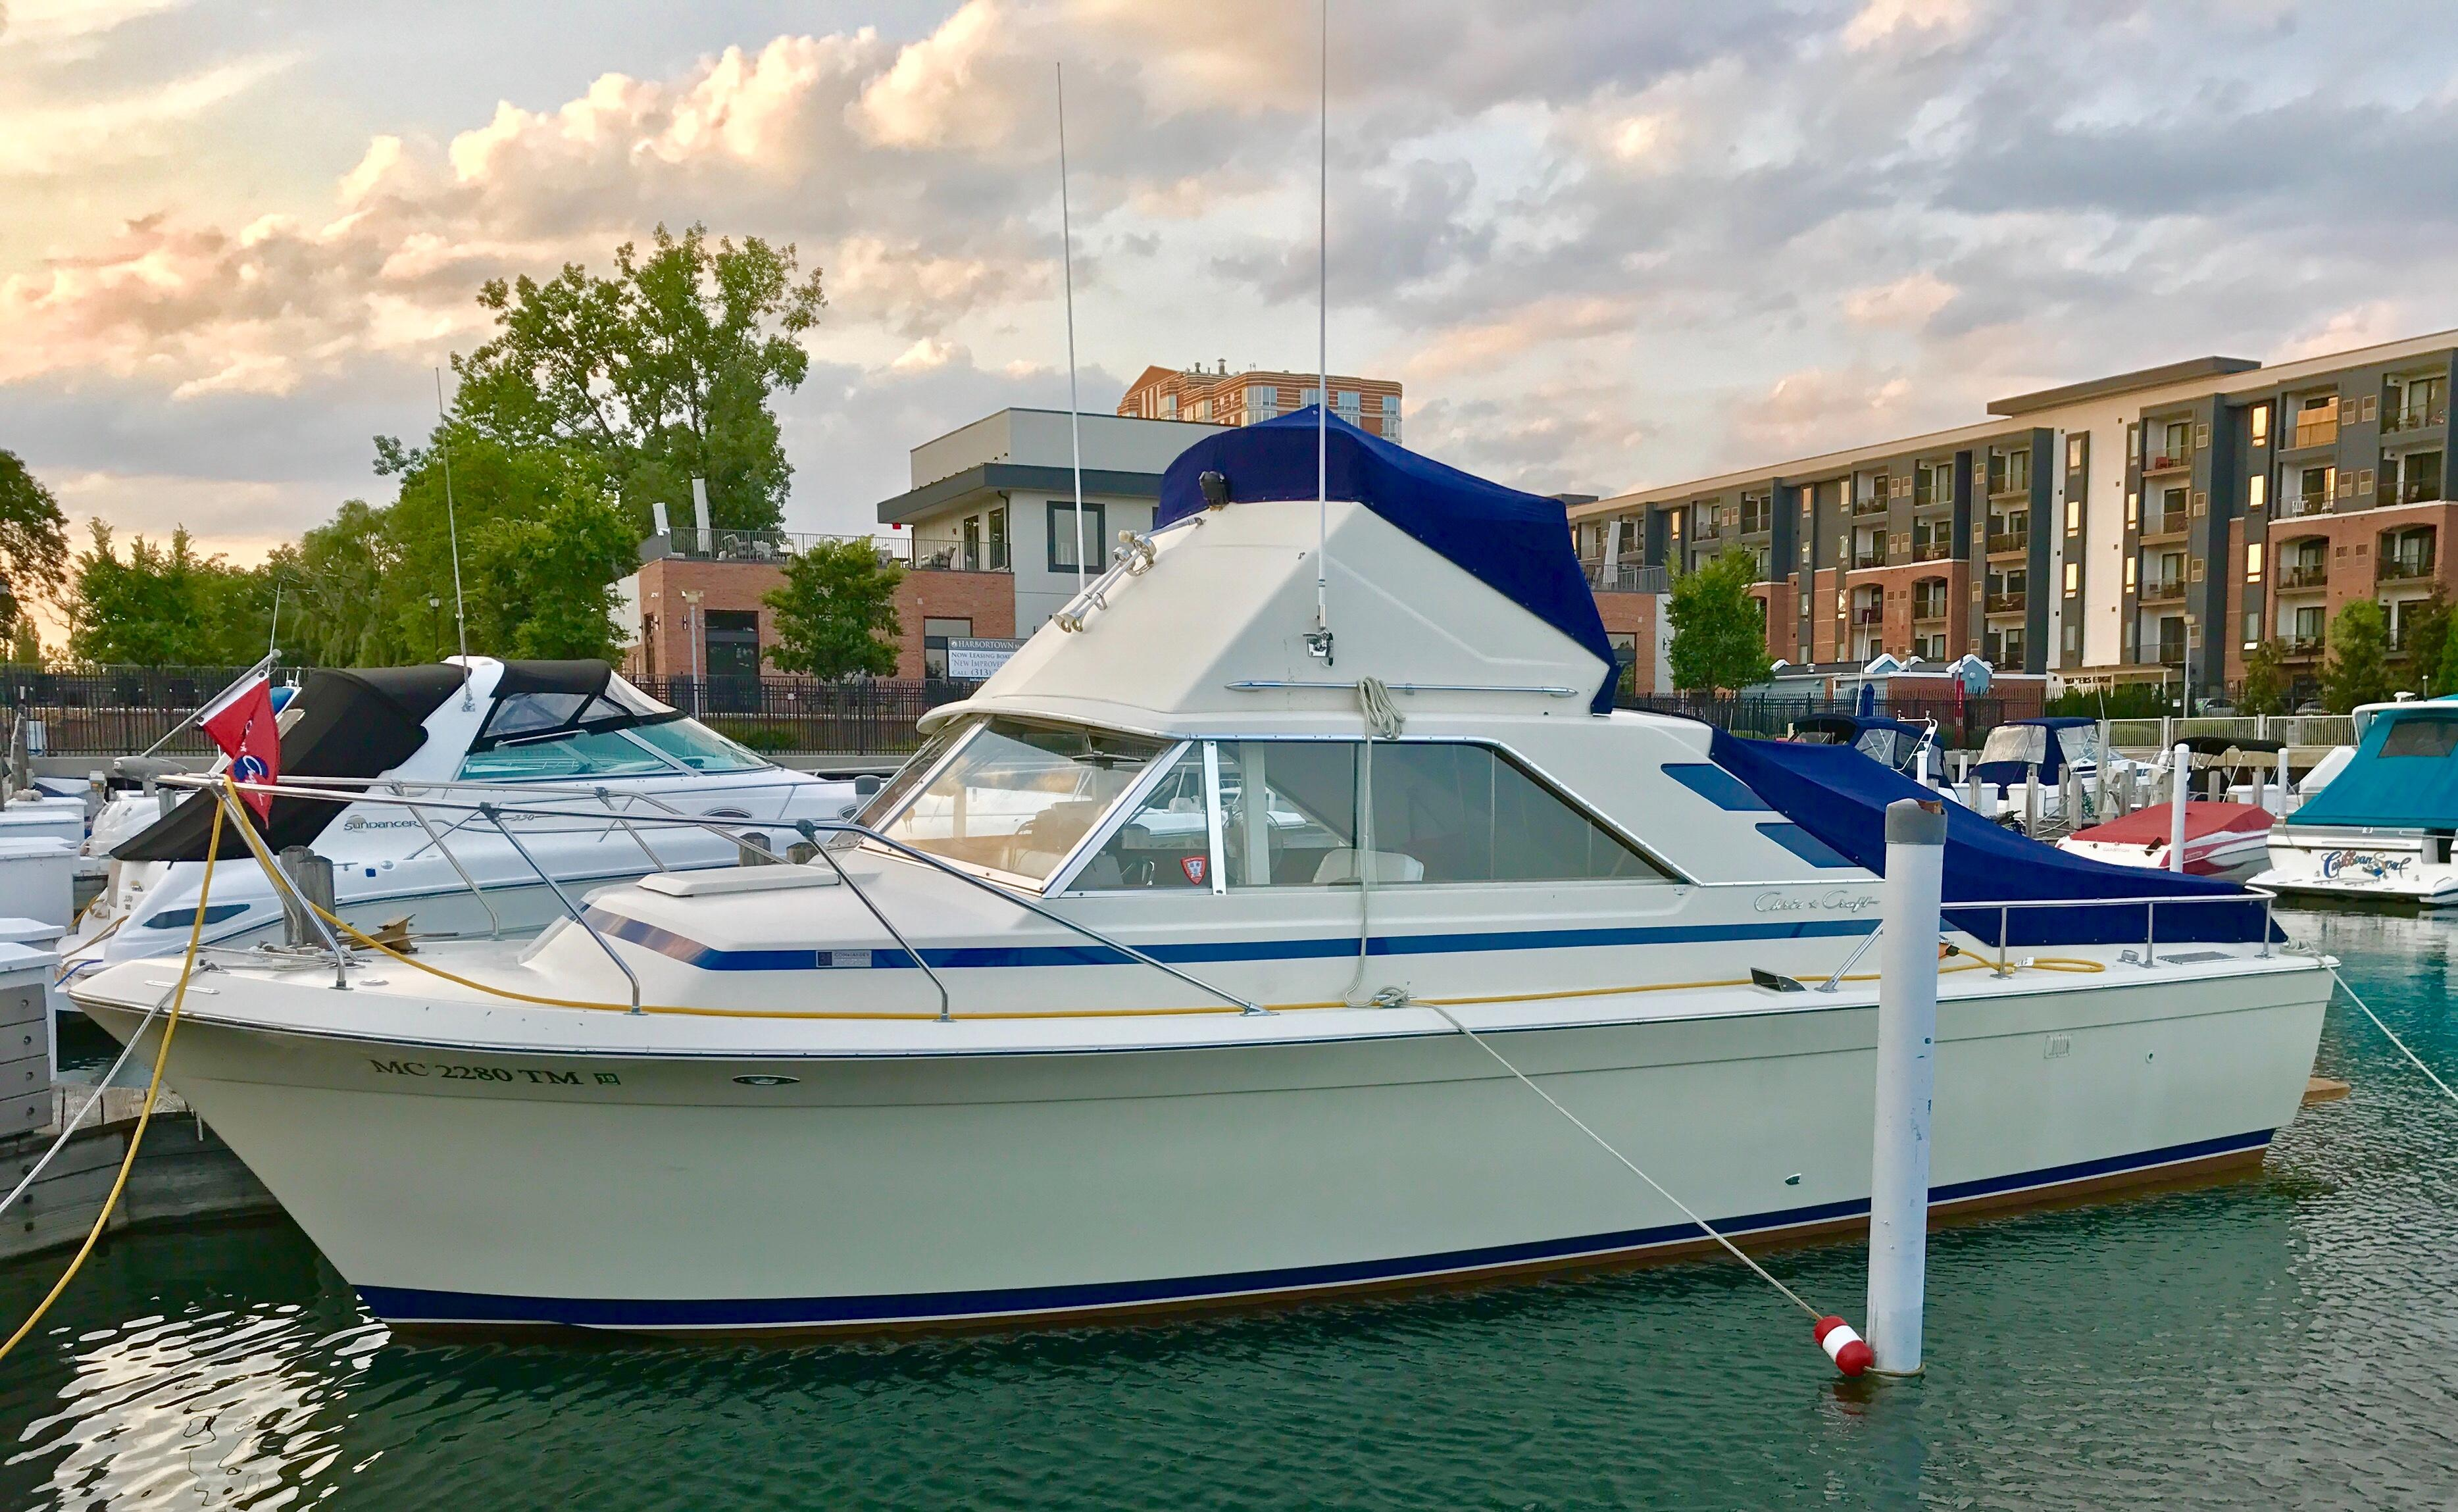 1973 chris craft 315 commander power boat for sale www yachtworld com chris craft wiring diagram electrical system [ 3736 x 2298 Pixel ]